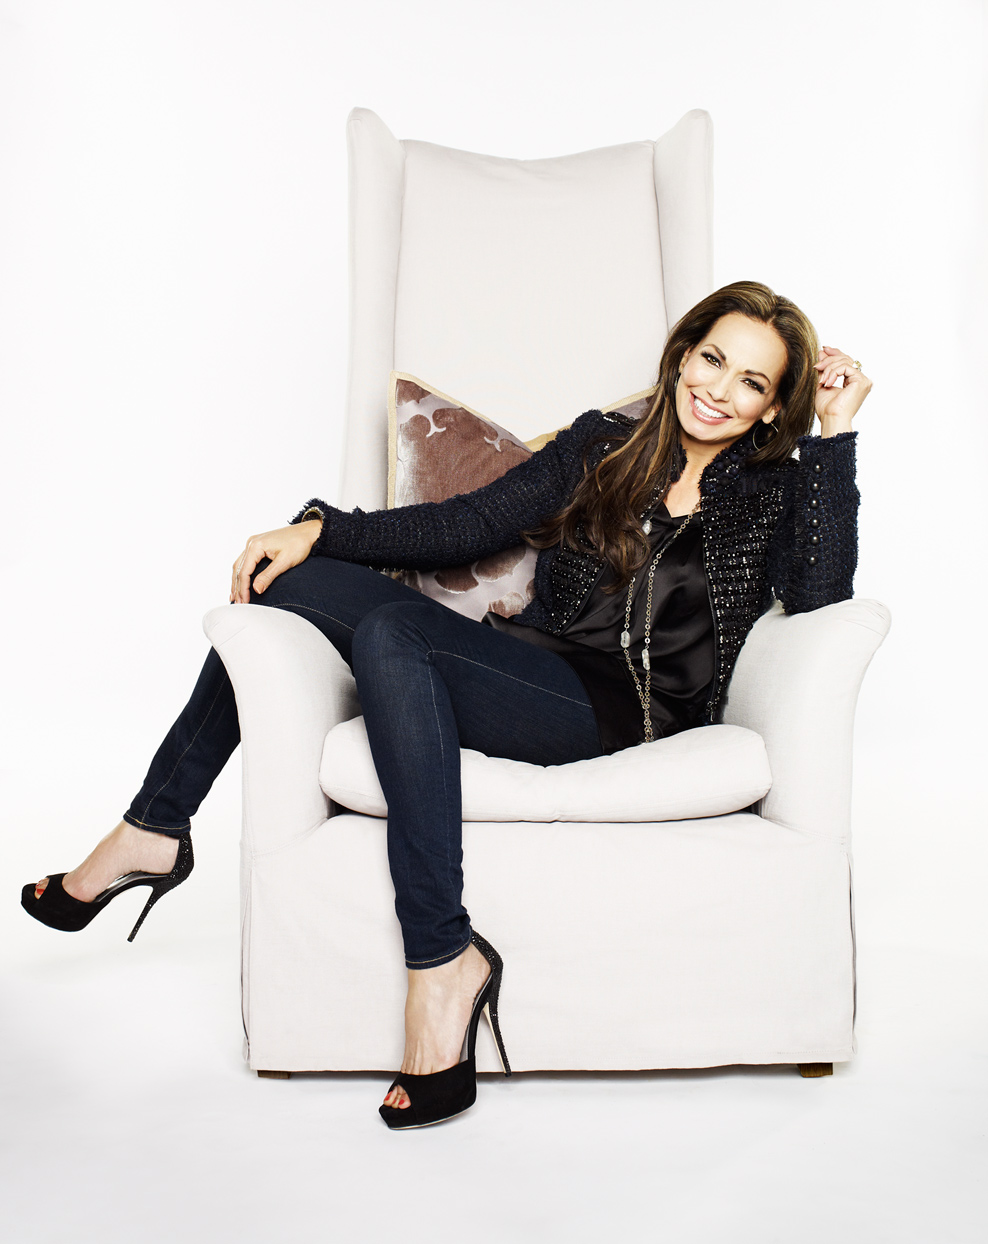 Mark DeLong - Celebrity Photographer - Actress sitting on a white chair.